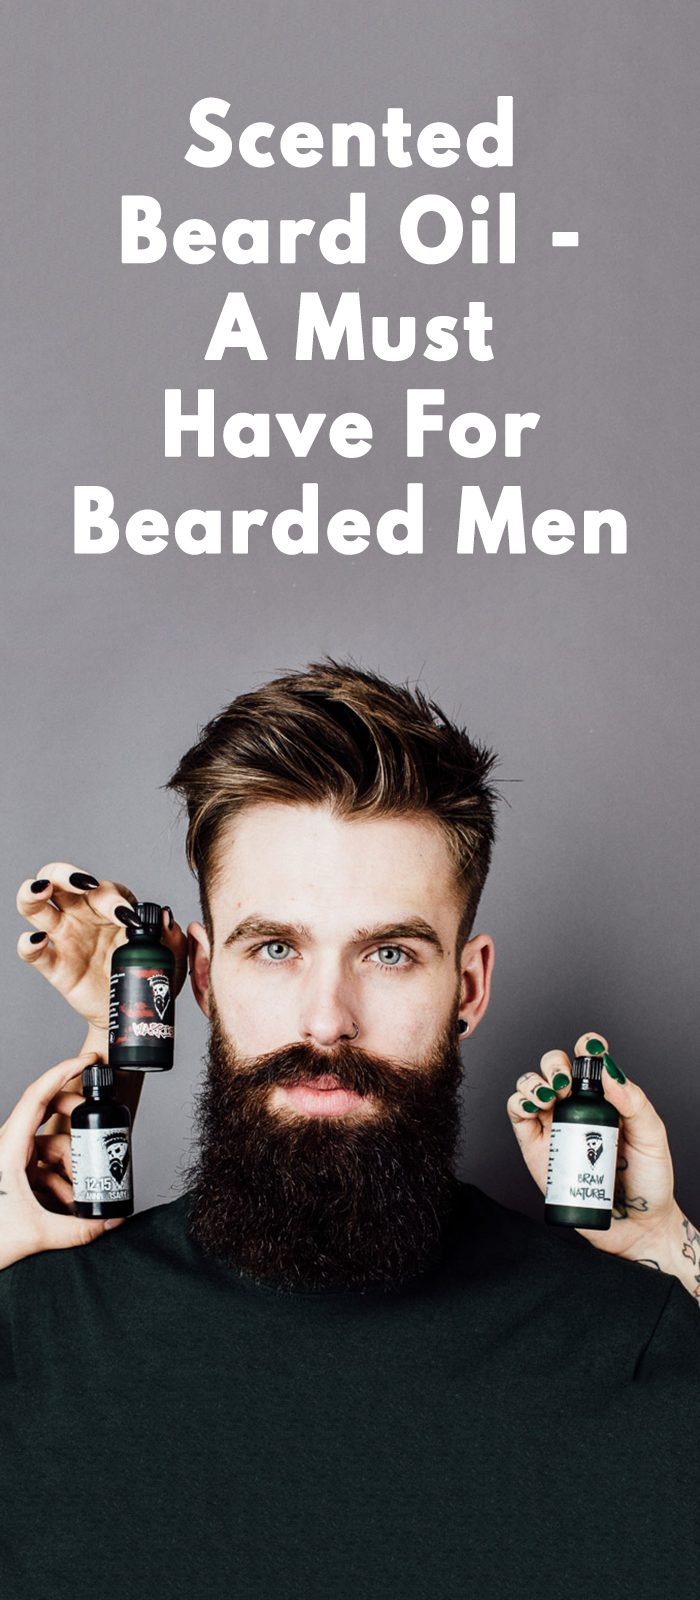 Scented Beard Oil - A Must Have For Bearded Men